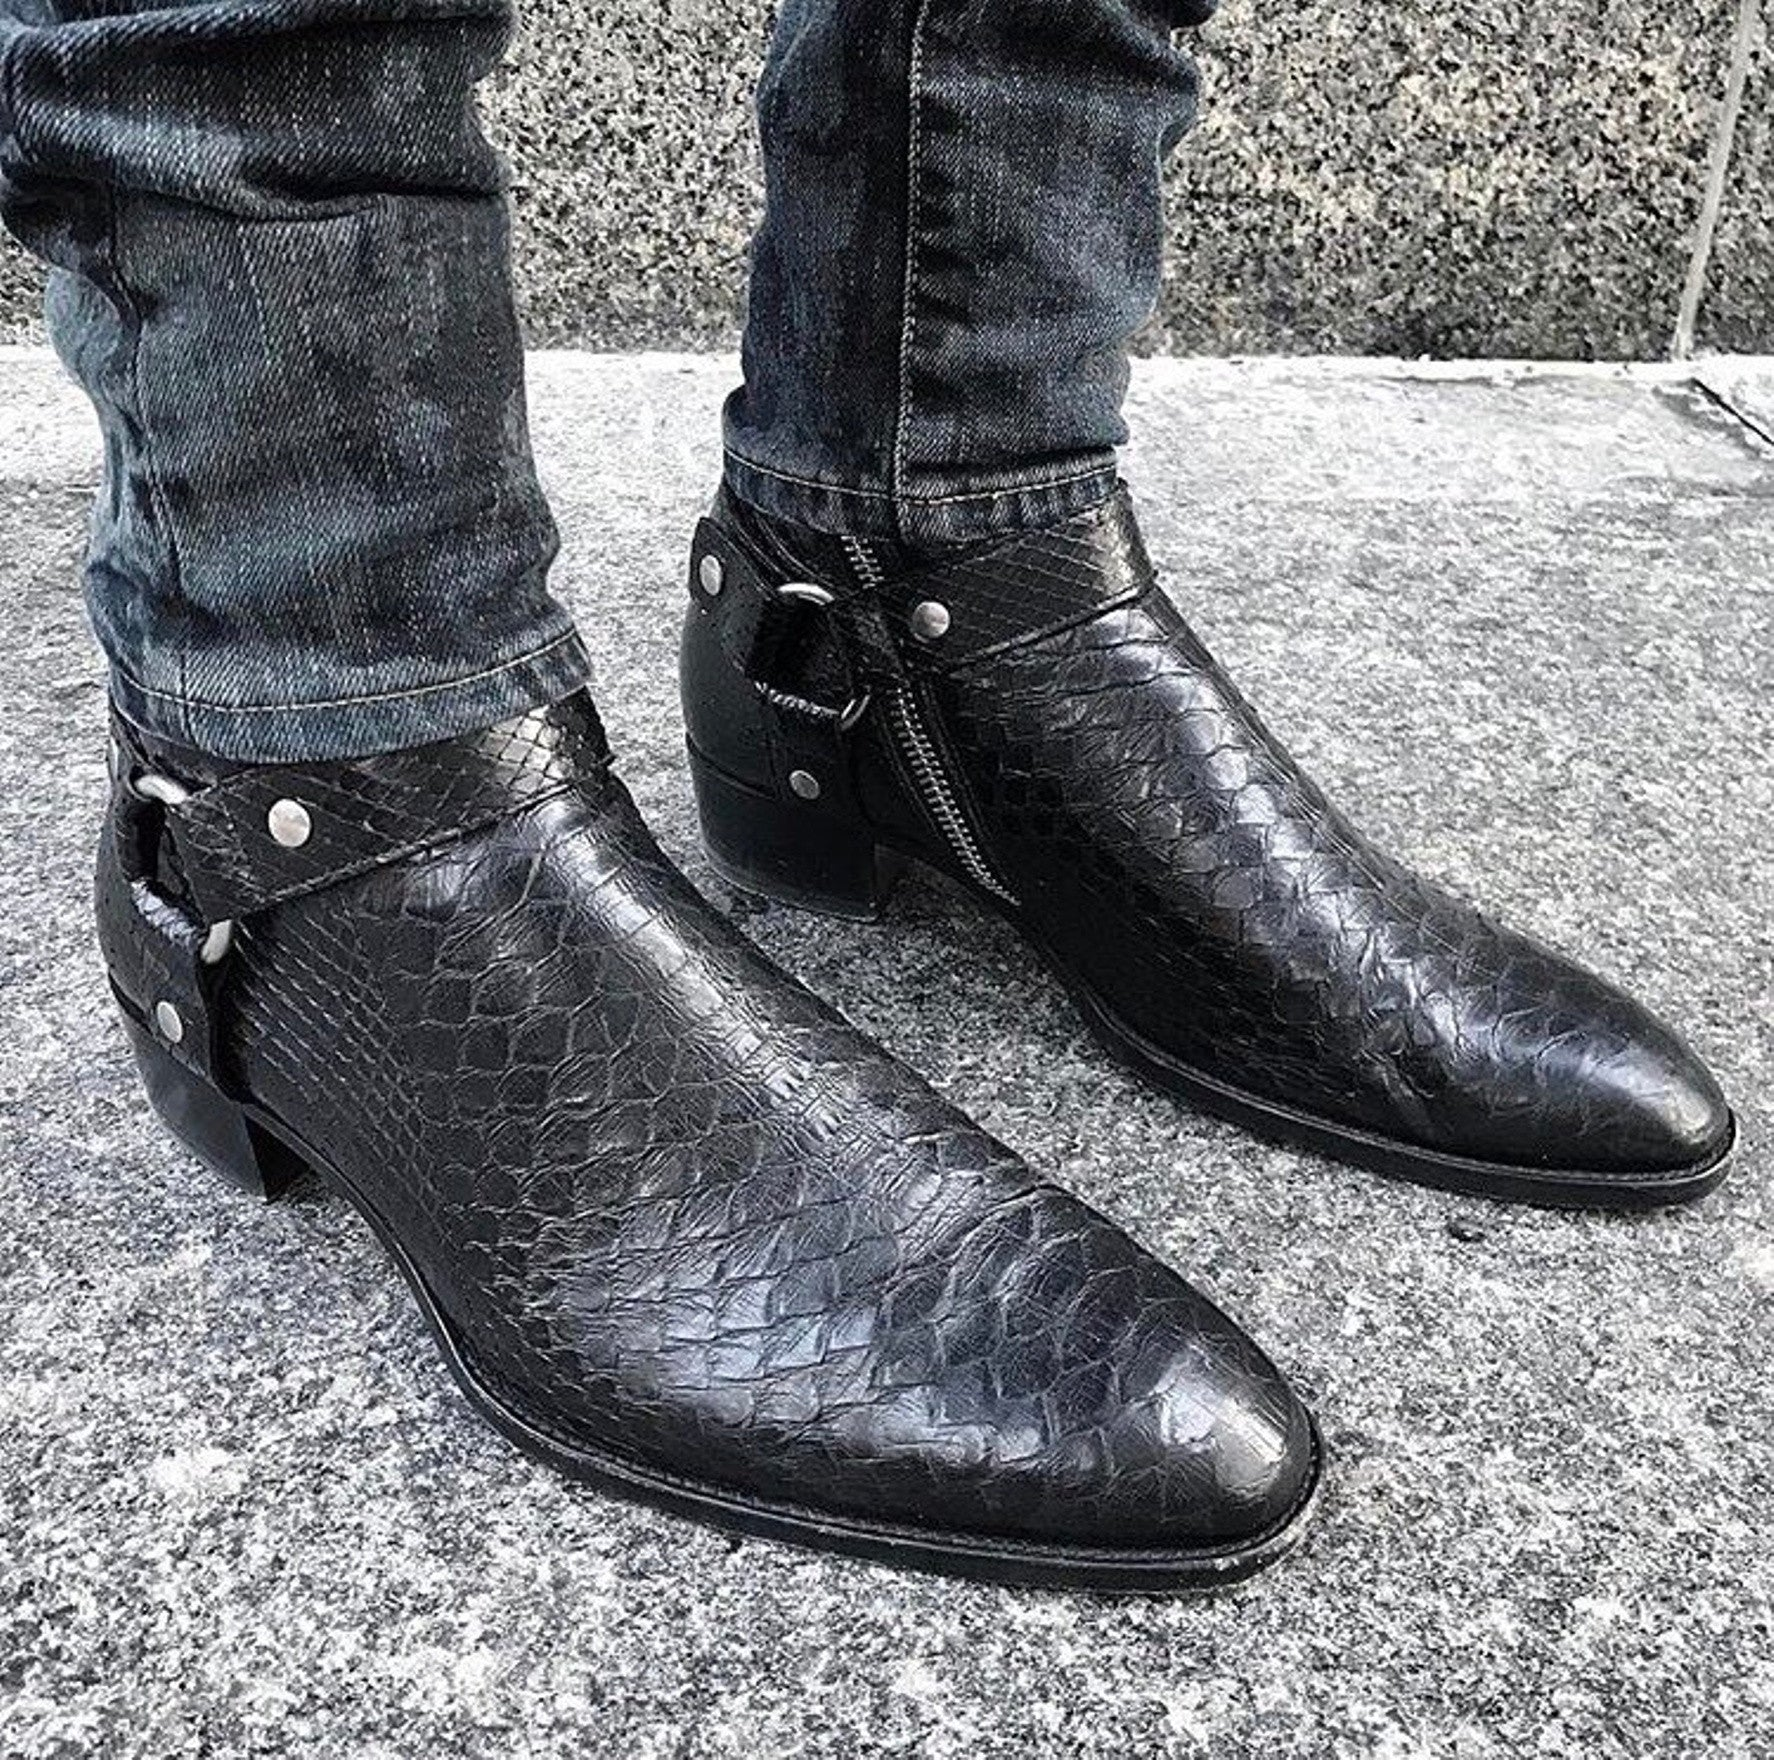 Saint Laurent Bottes Saint Laurent Wyatt Yhp6MOnSb